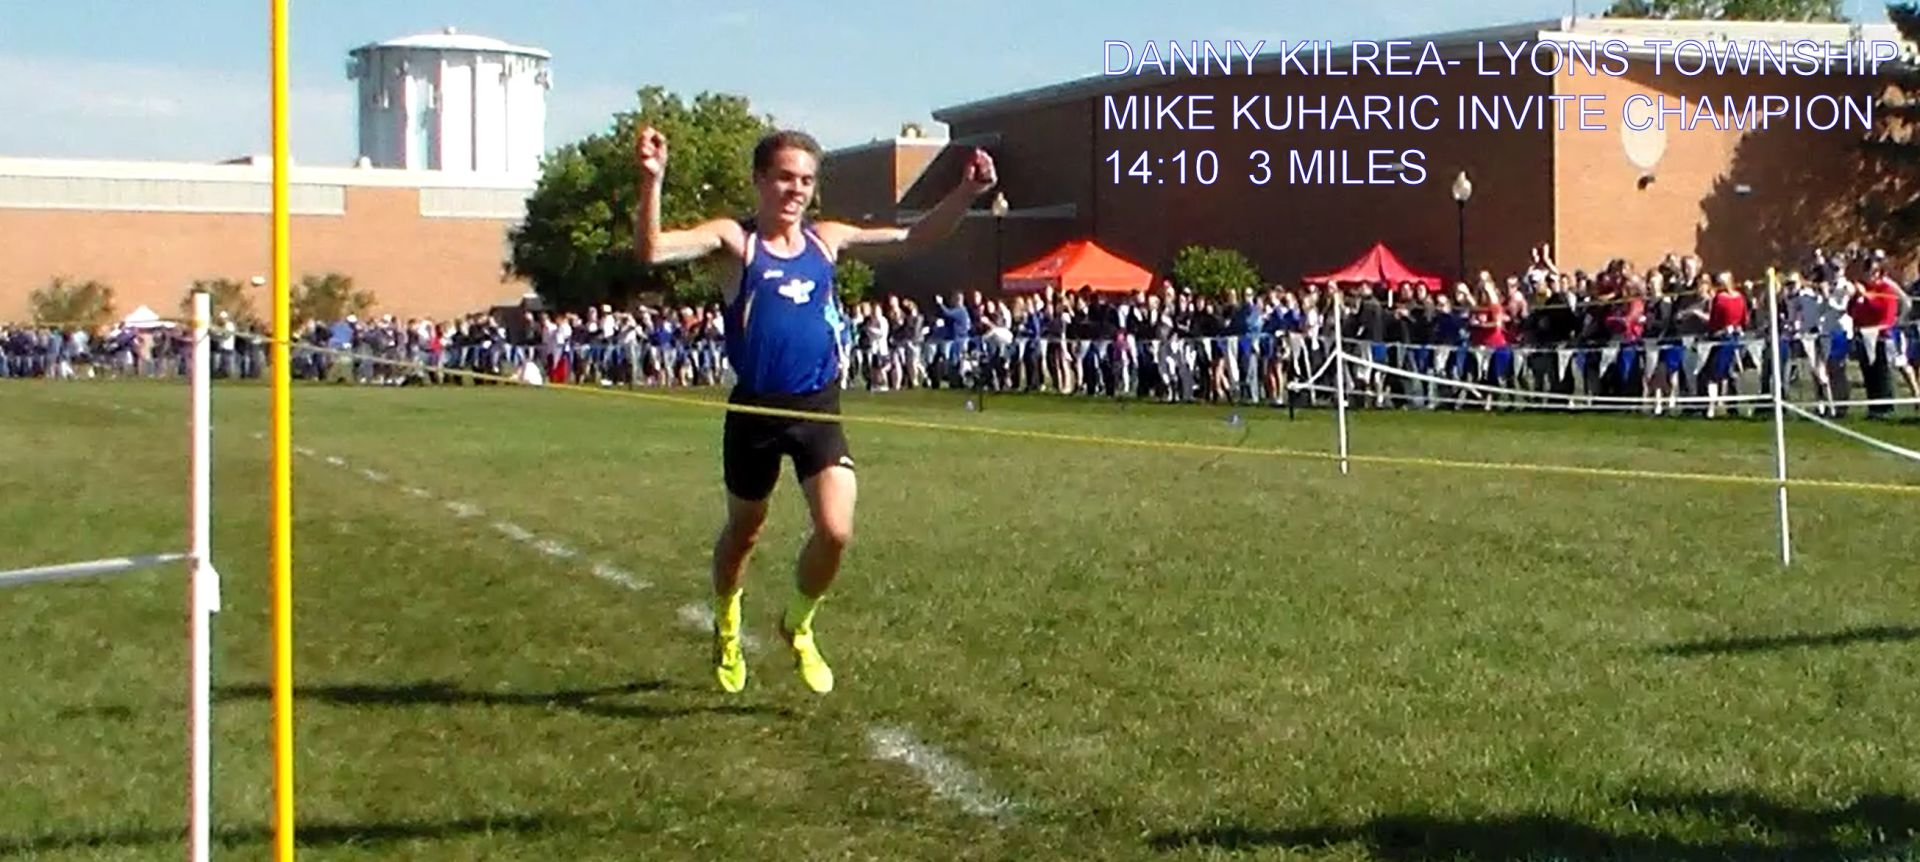 ILXCTF XC State Rankings - Weekend Highlights